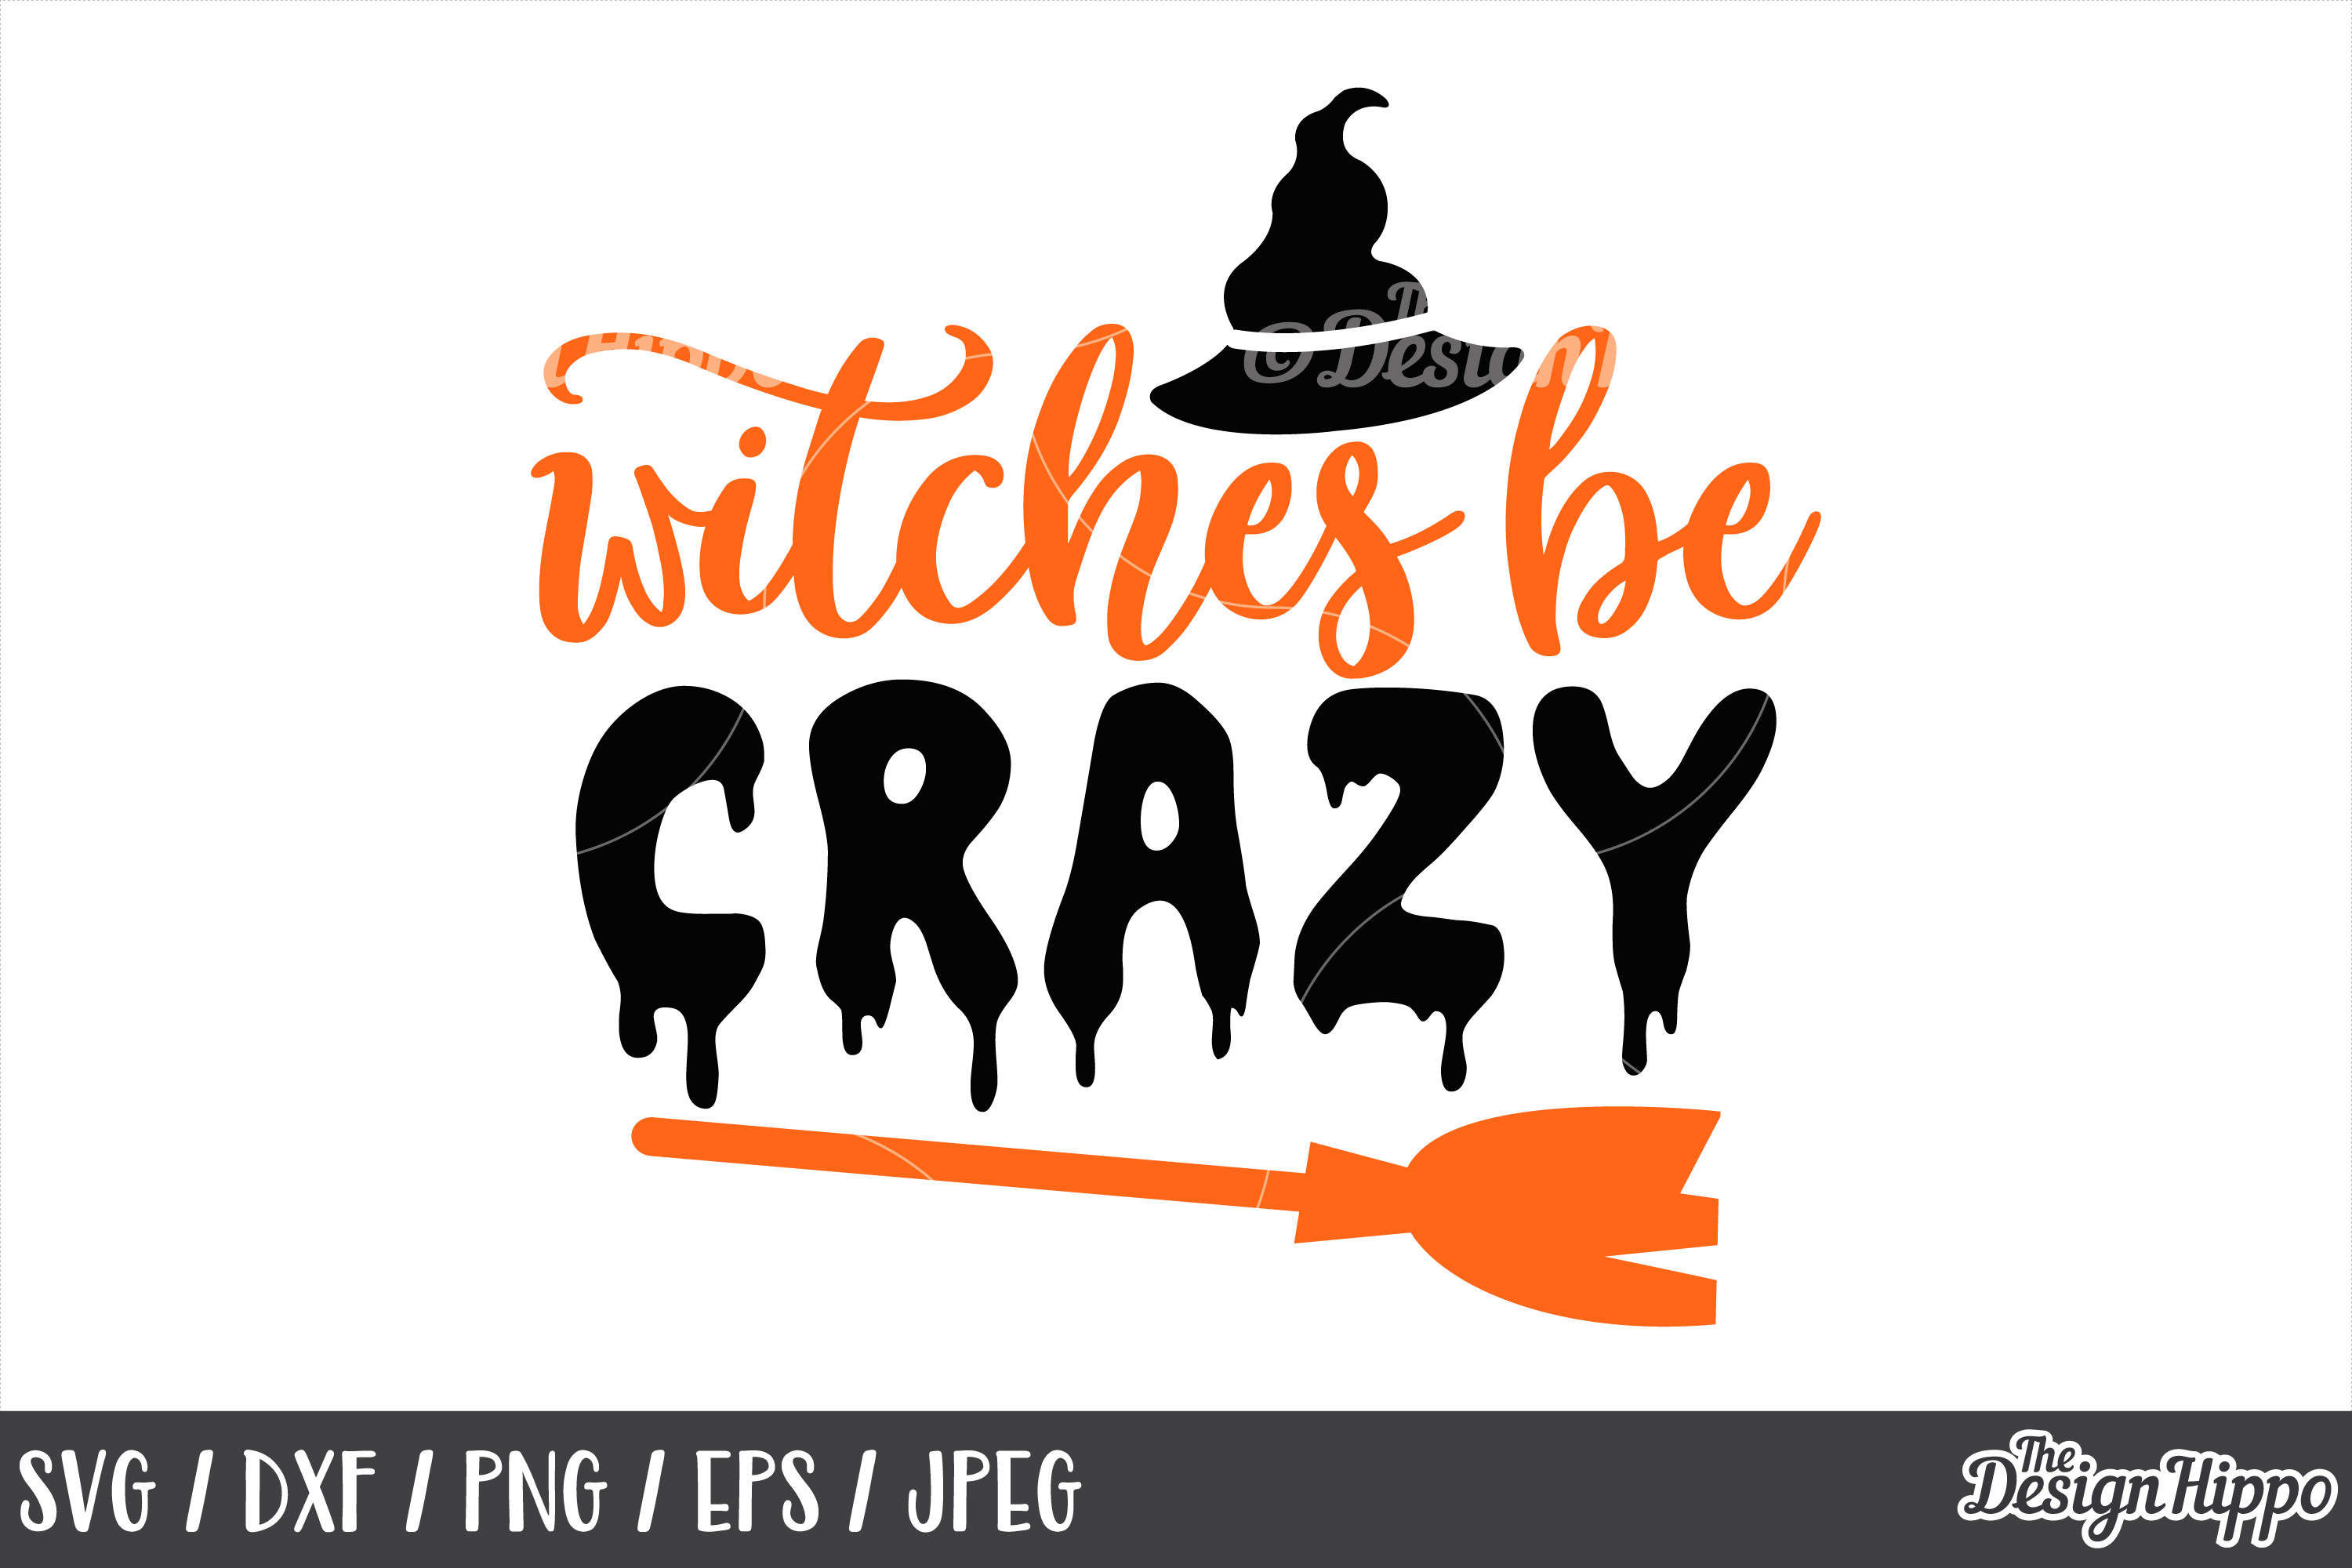 Witches be crazy SVG, Halloween, Witch hat, Broom, SVG, PNG example image 1